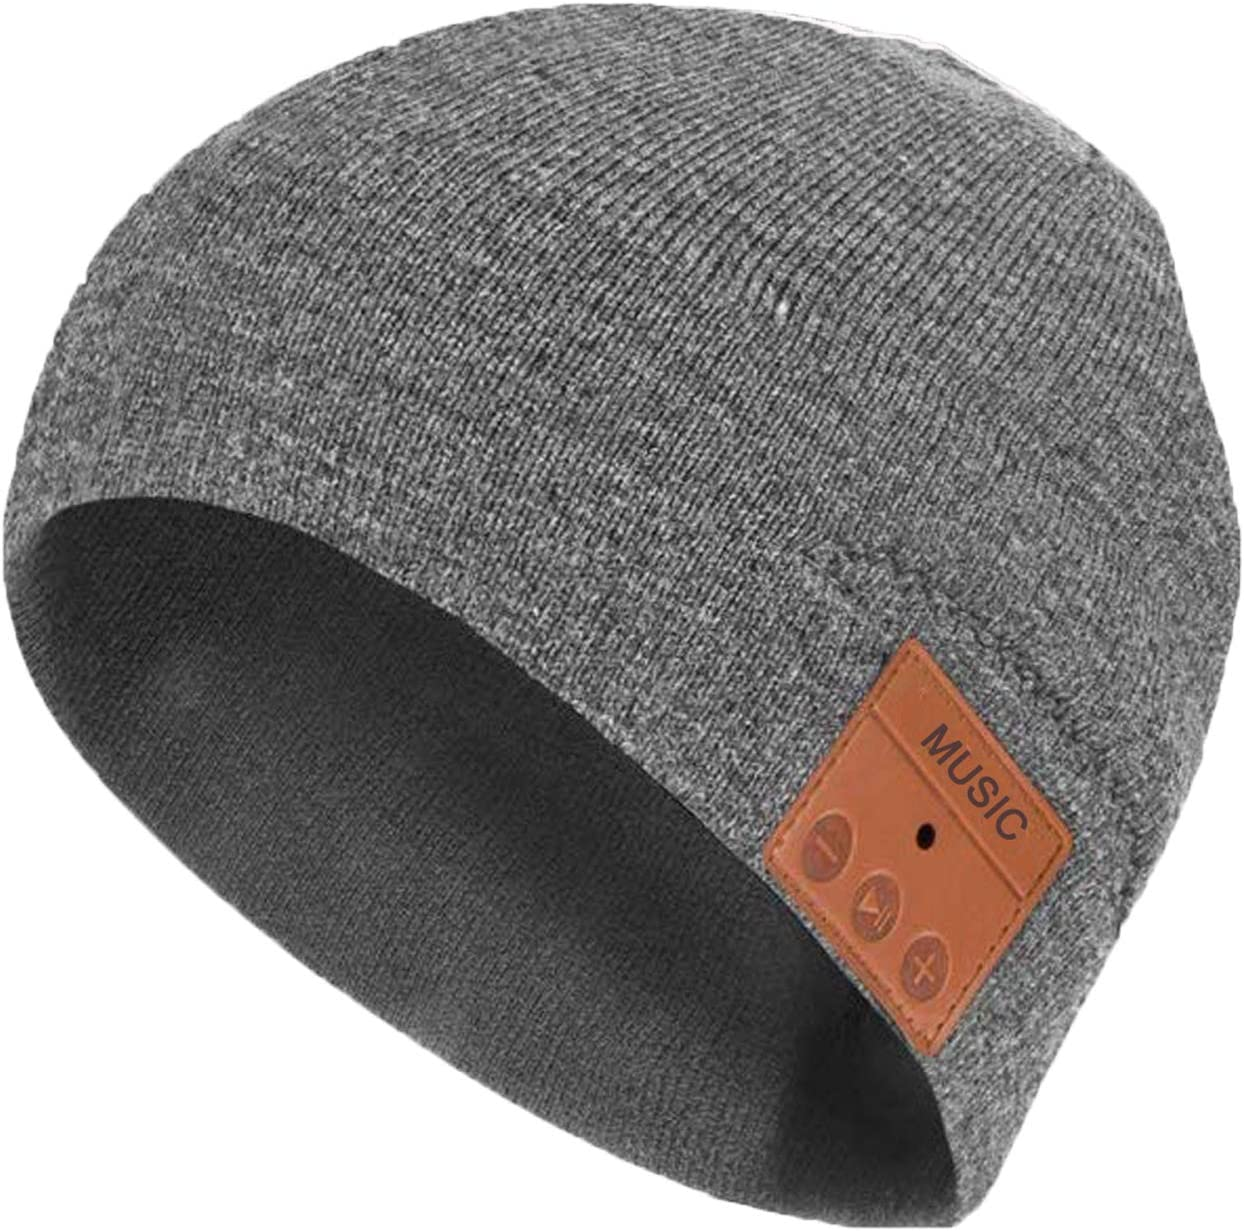 Bluetooth Beanie Hat Headphone Winter Knit Cap with Stereo Speaker Mic for Outdoor Sports